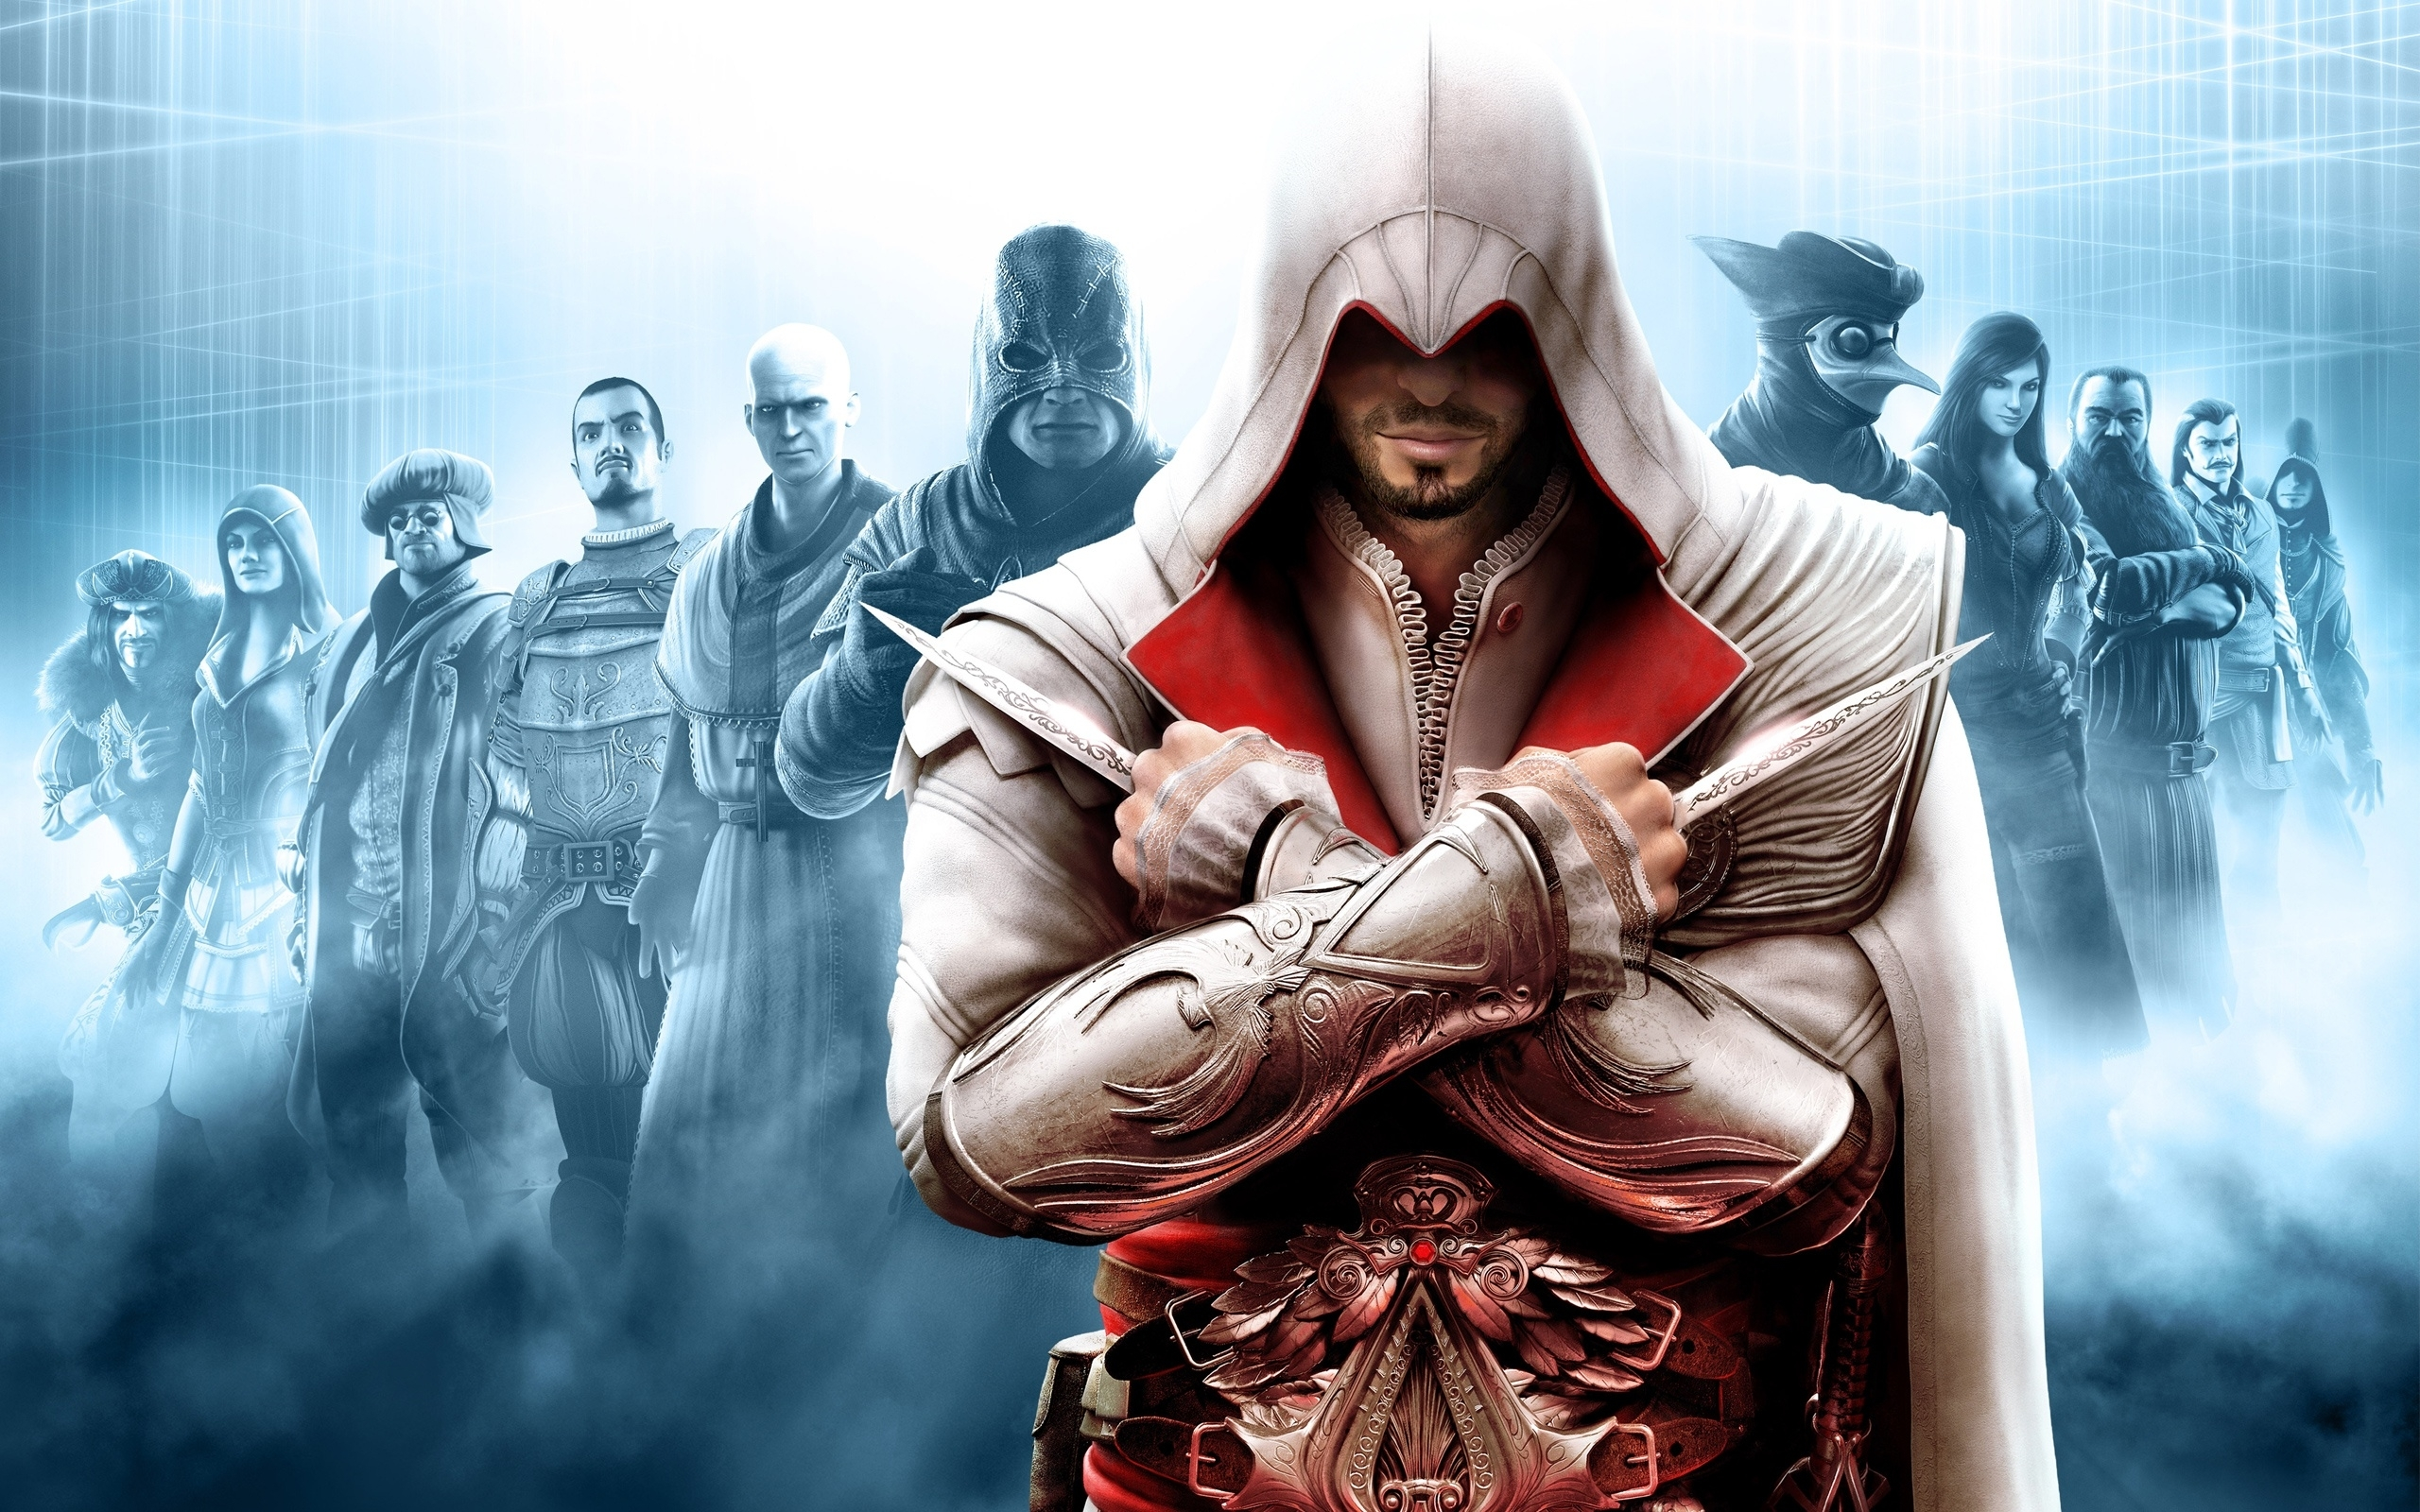 assassin's creed: brotherhood full hd fond d'écran and arrière-plan